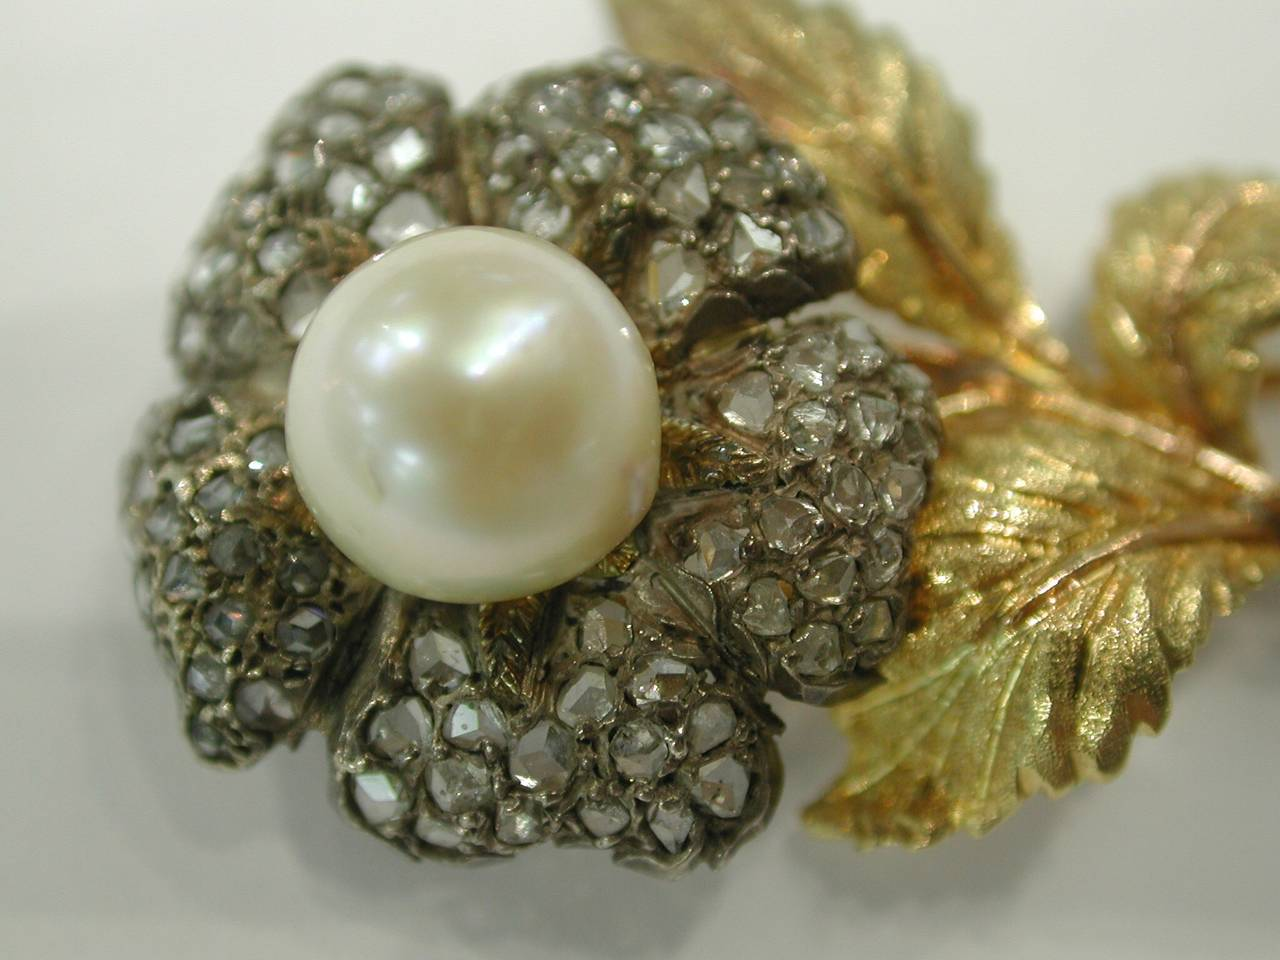 A sophisticated ,classic brooch crafted by Buccellati, featuring Rose Cut Diamonds and Cultured Pearls on a 18k yellow gold mounting. Approximately 80 diamonds 0.60Cts. Metal:8.8 grams